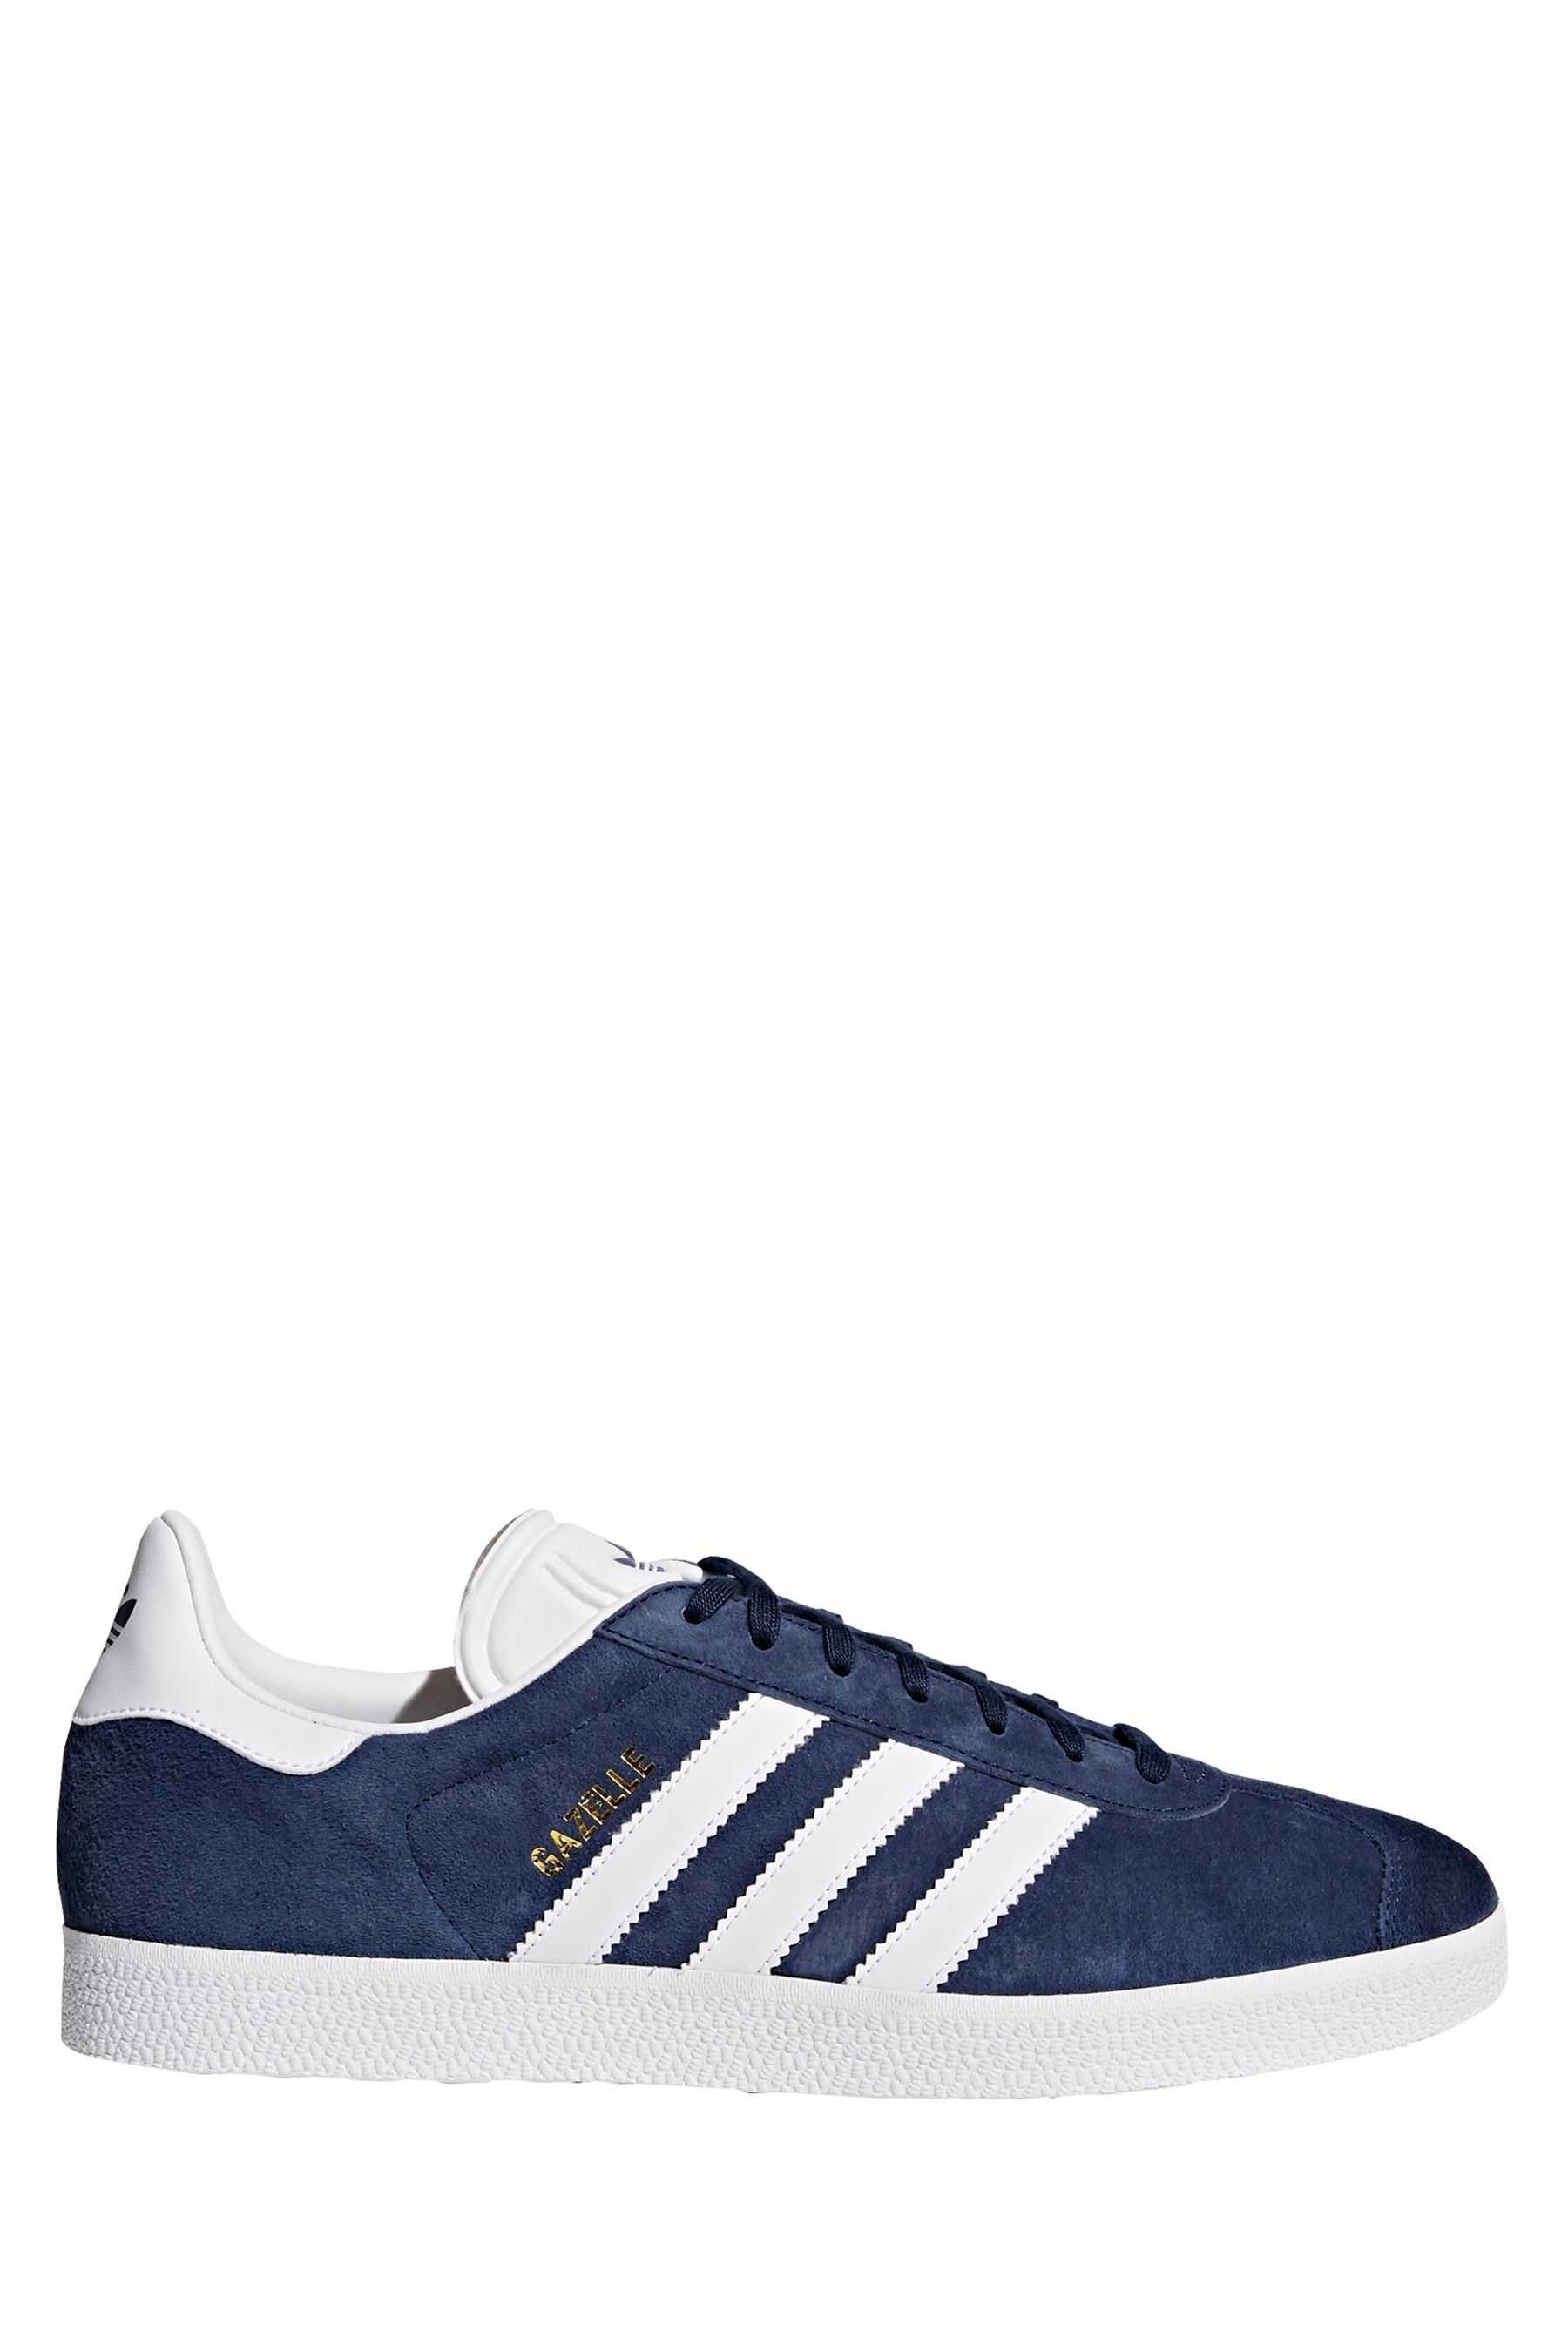 Buy adidas Originals Gazelle Trainers from the Next UK online shop ...